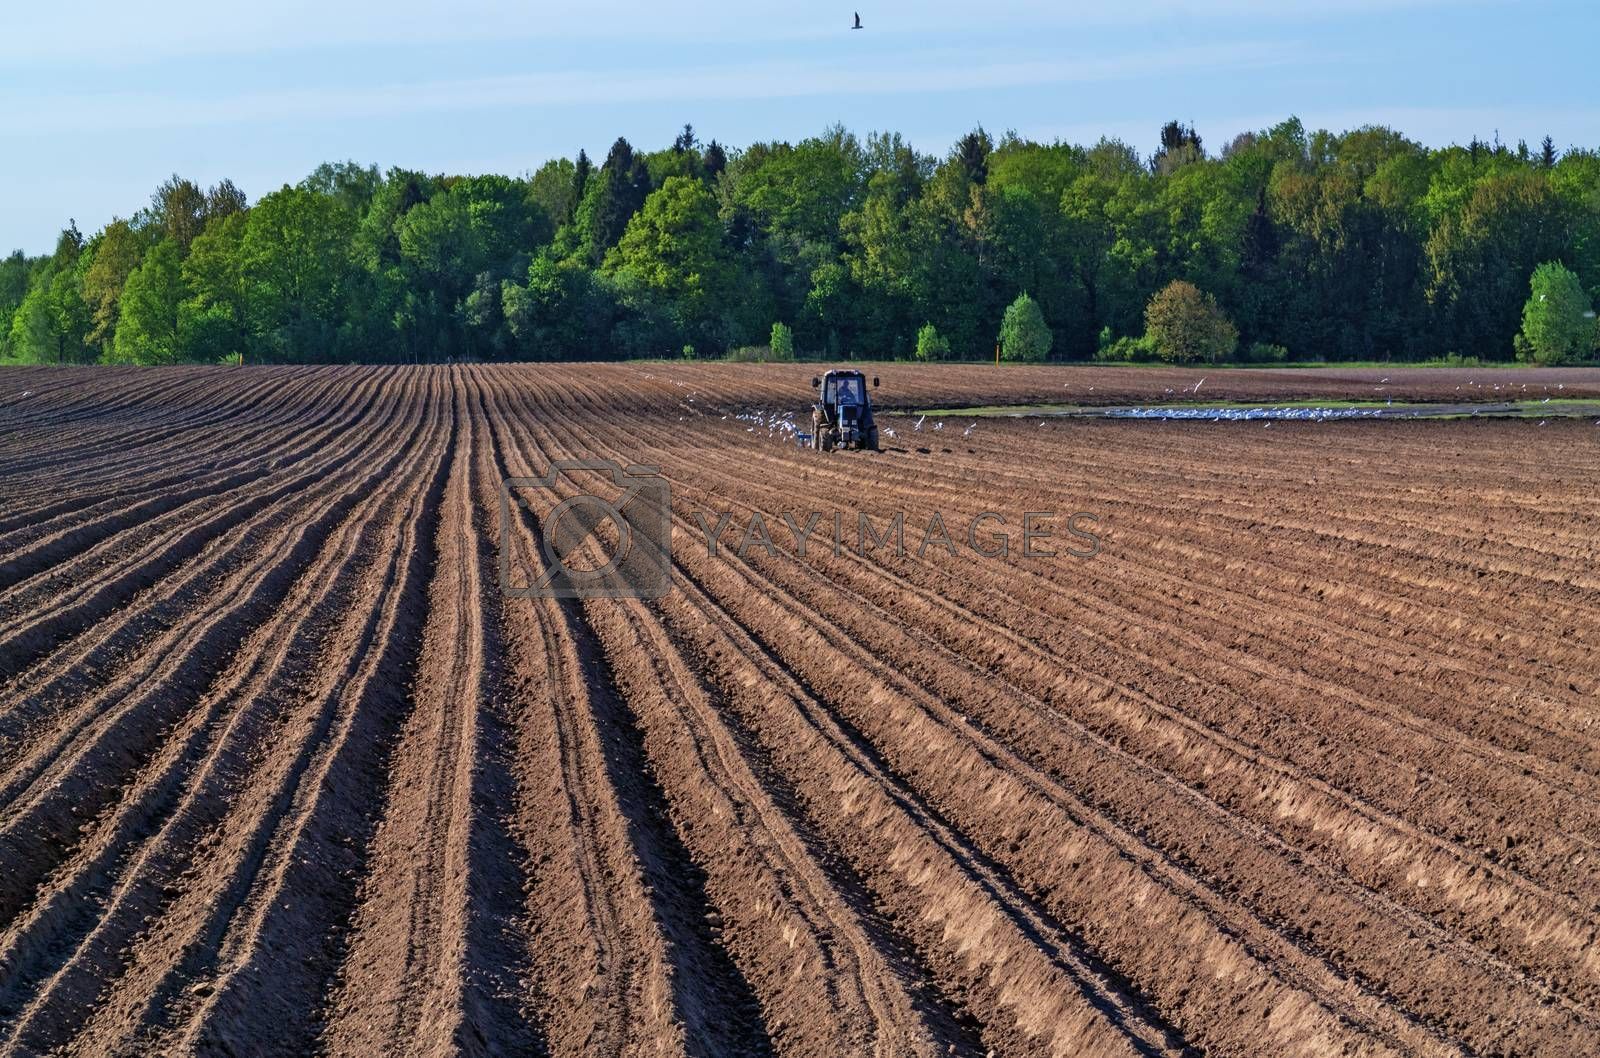 Tractor with a seeder with escort white birds.